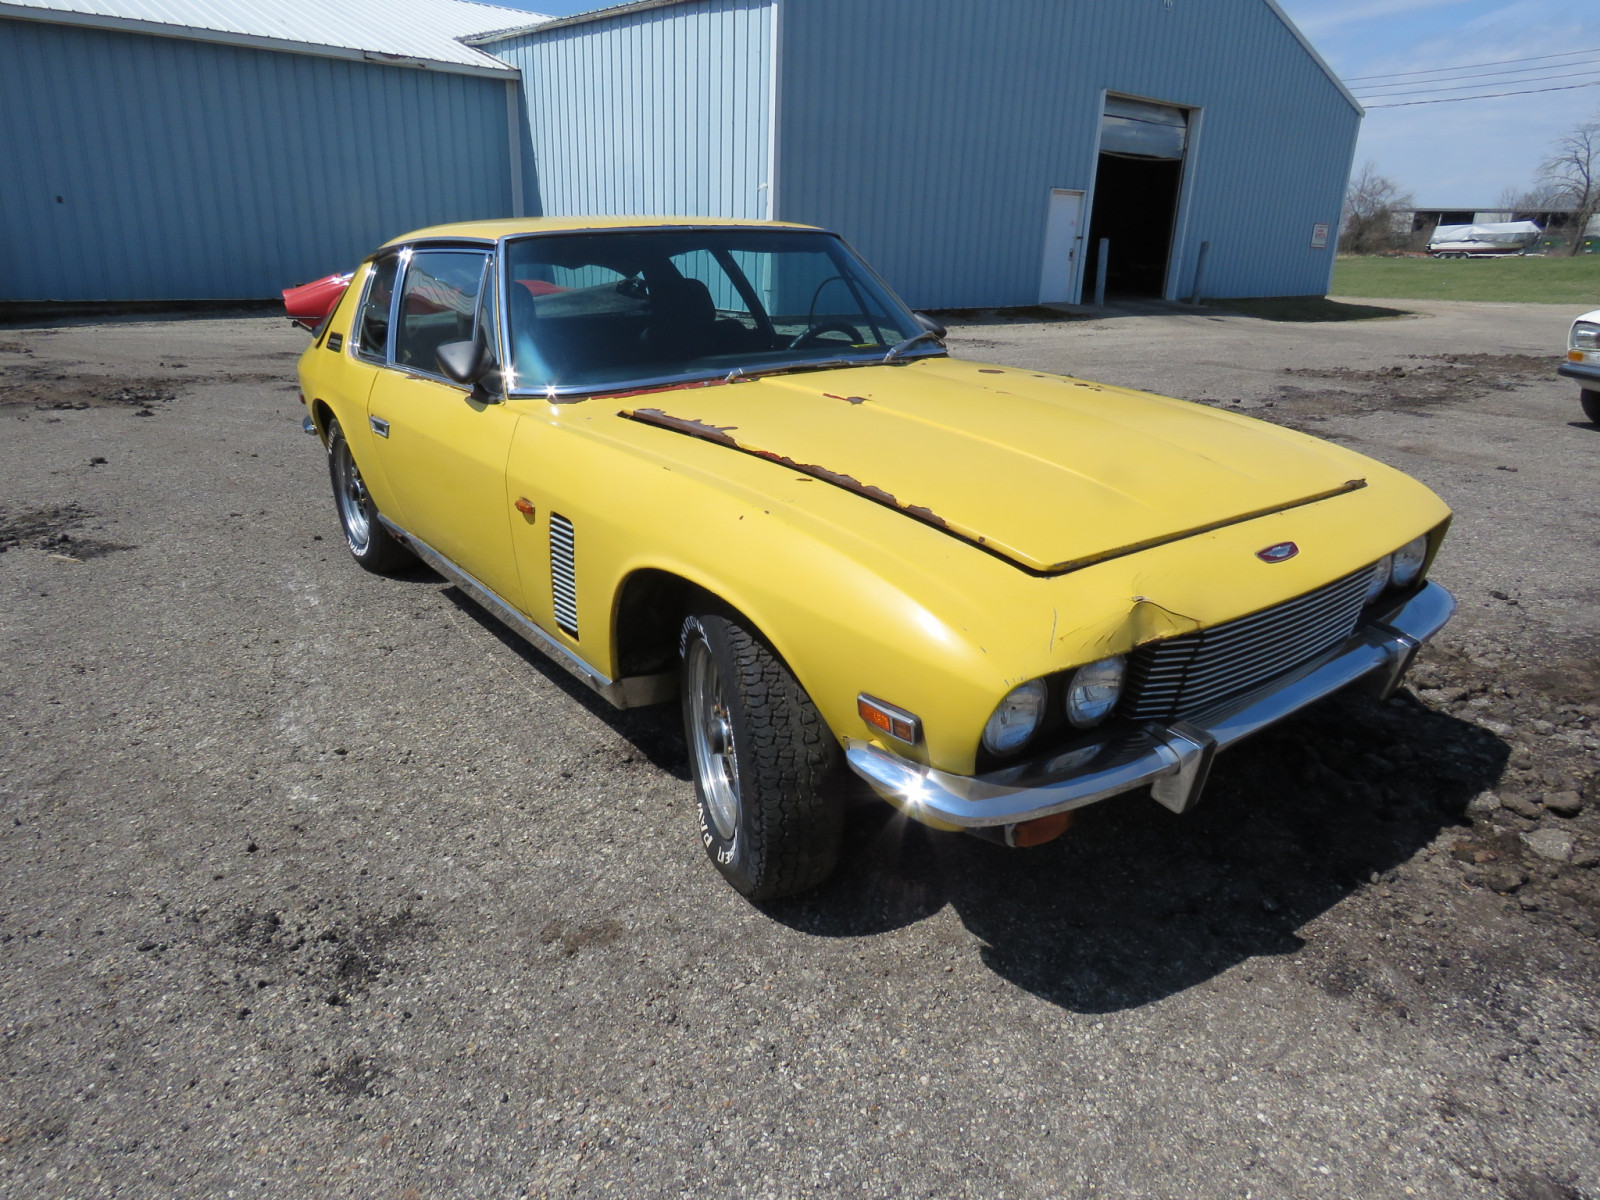 1971 Jensen Interceptor - Image 1